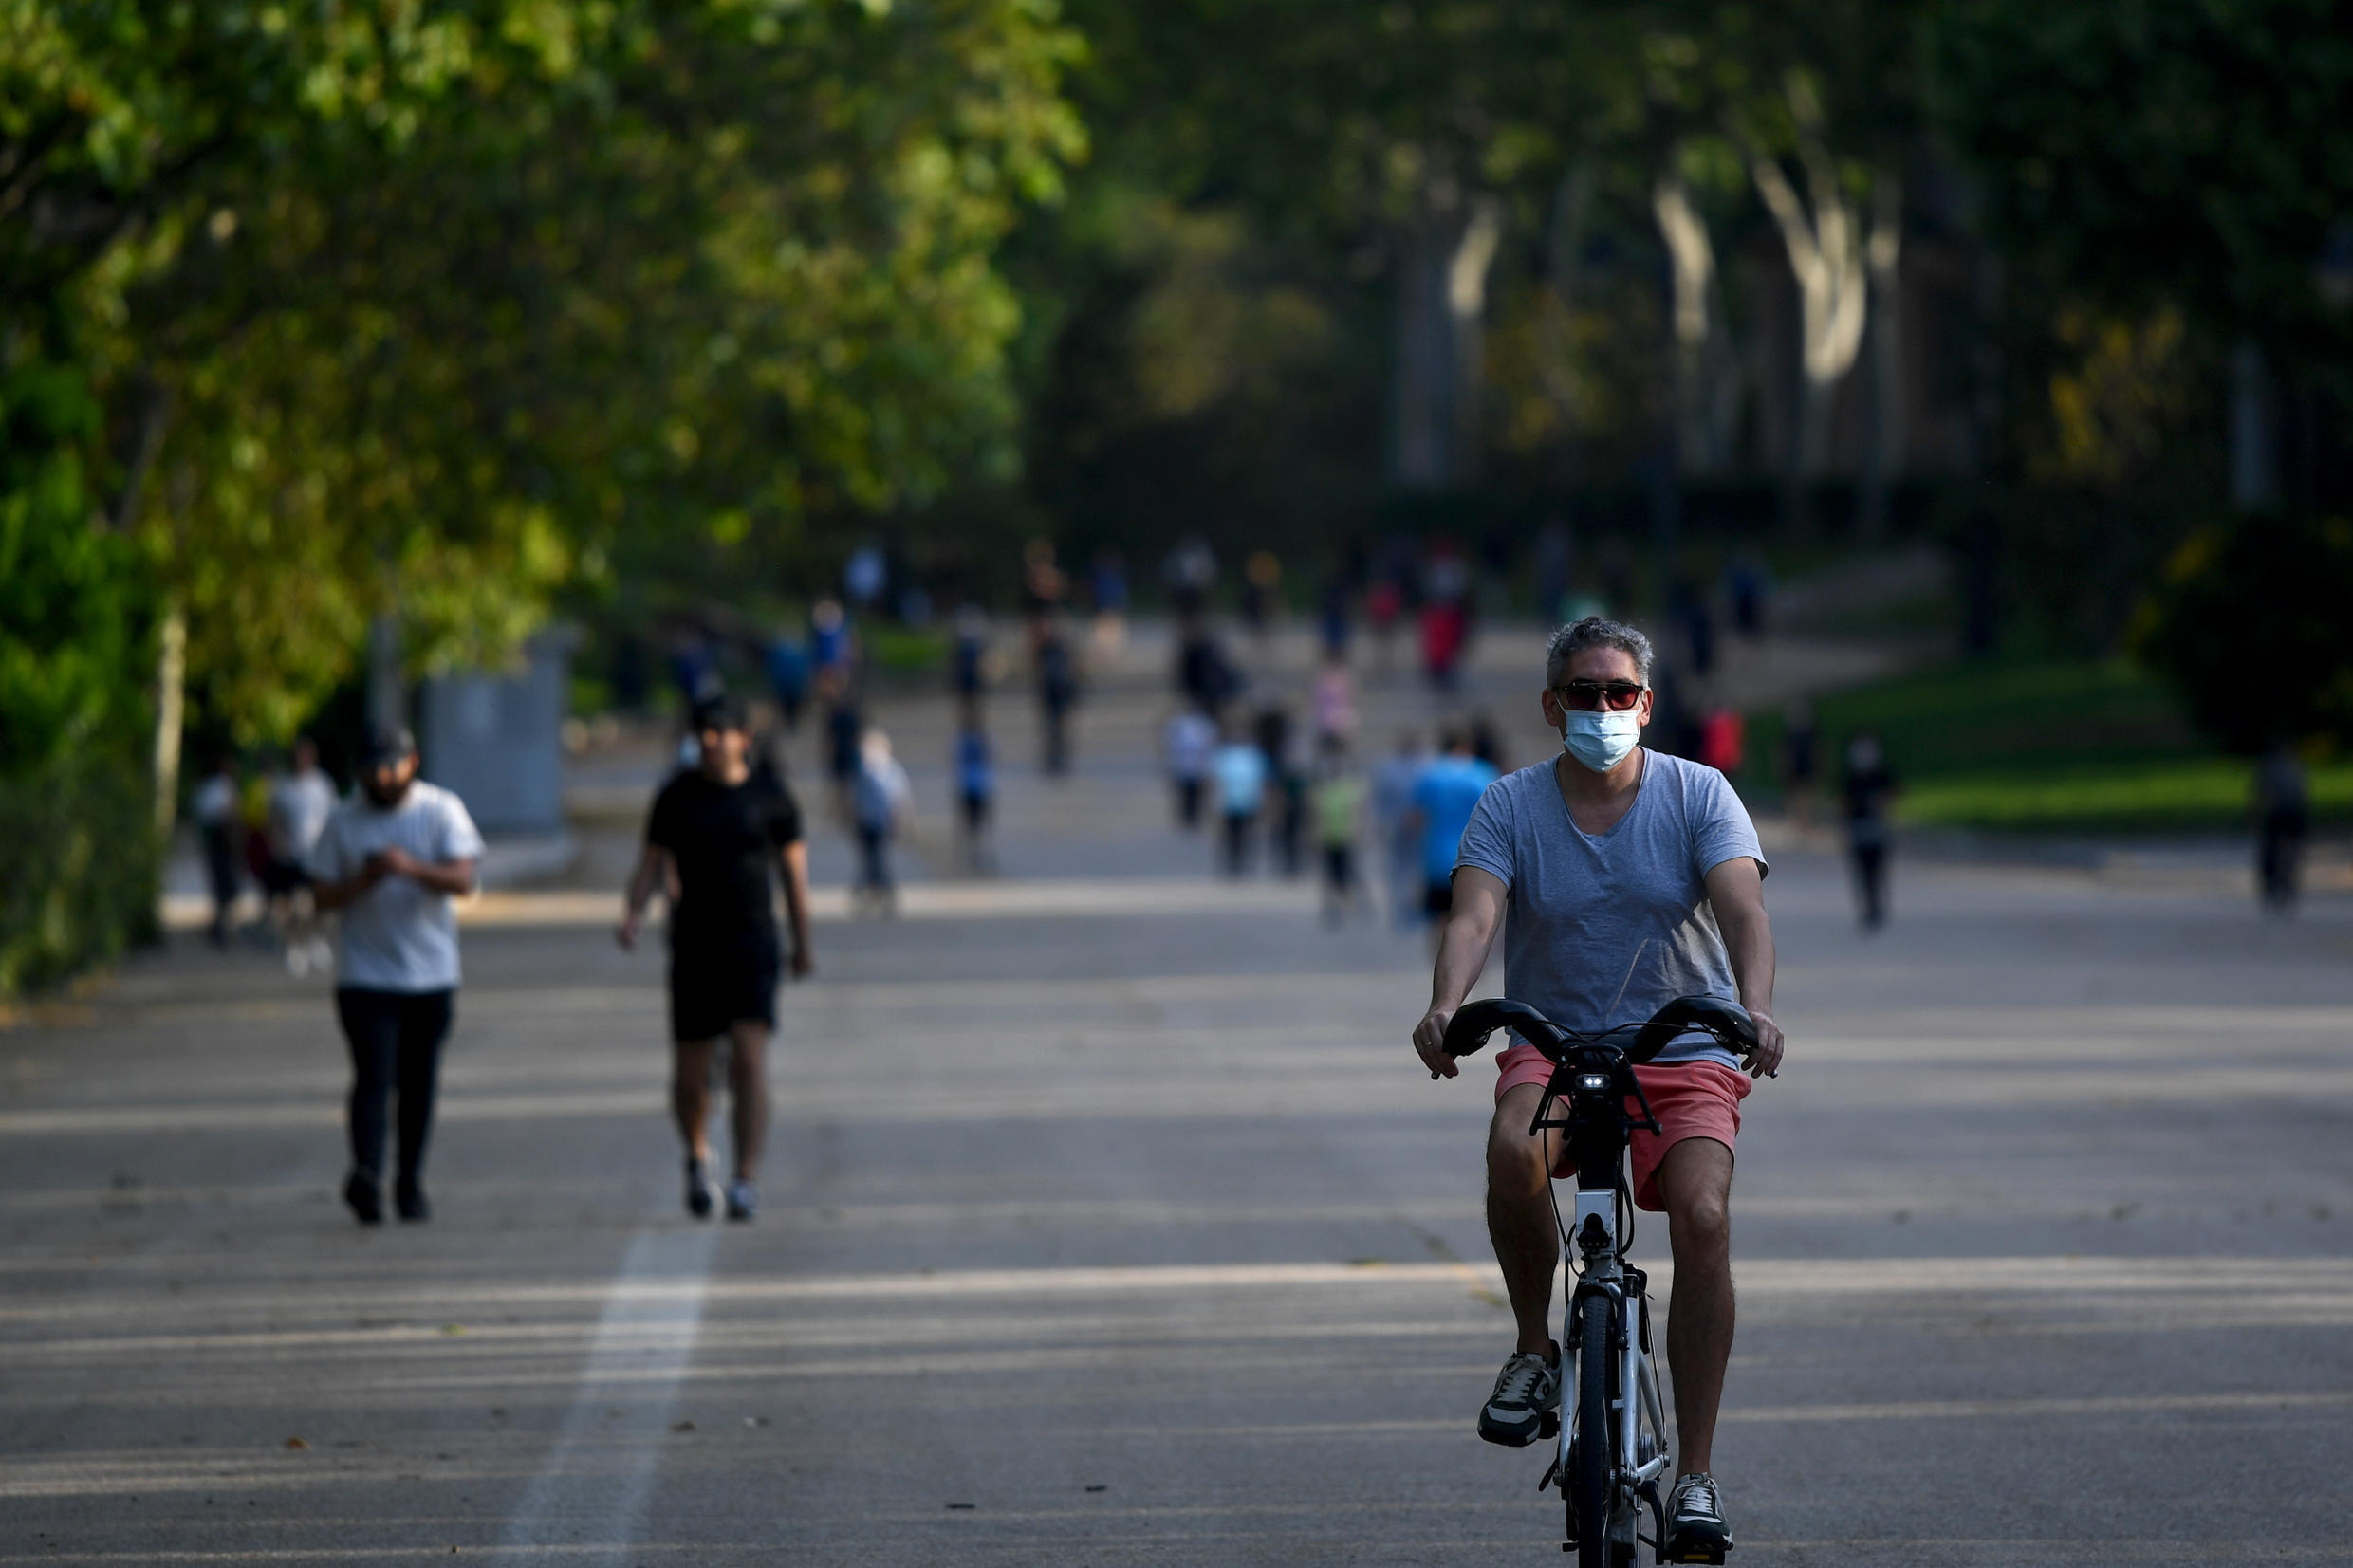 Hundreds of people packed parks in Madrid as Spain eased months-long lockdown measures